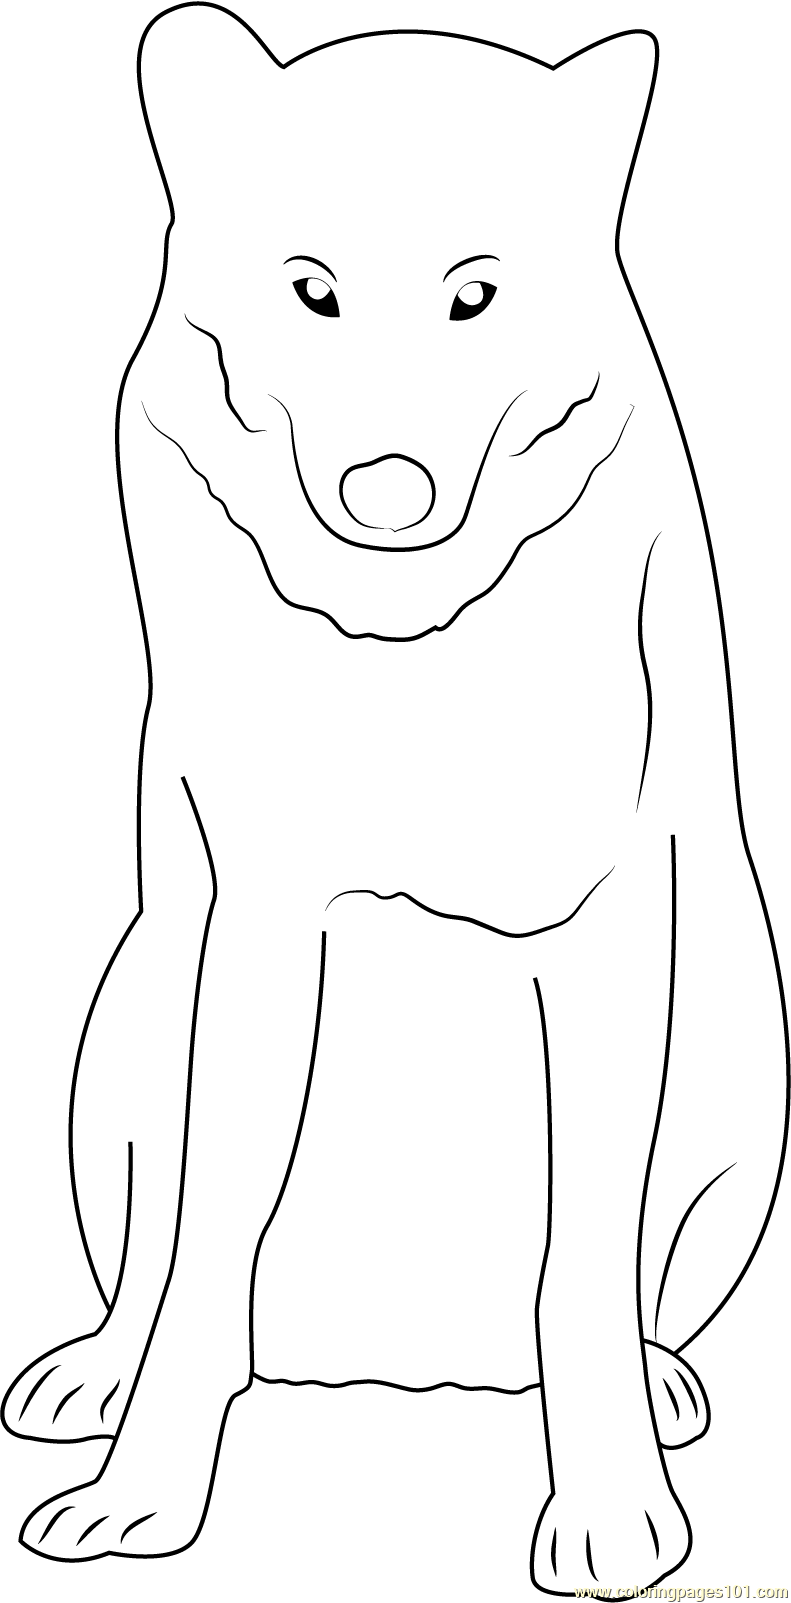 Gray wolf in minnesota coloring page free wolf coloring for Grey wolf coloring pages